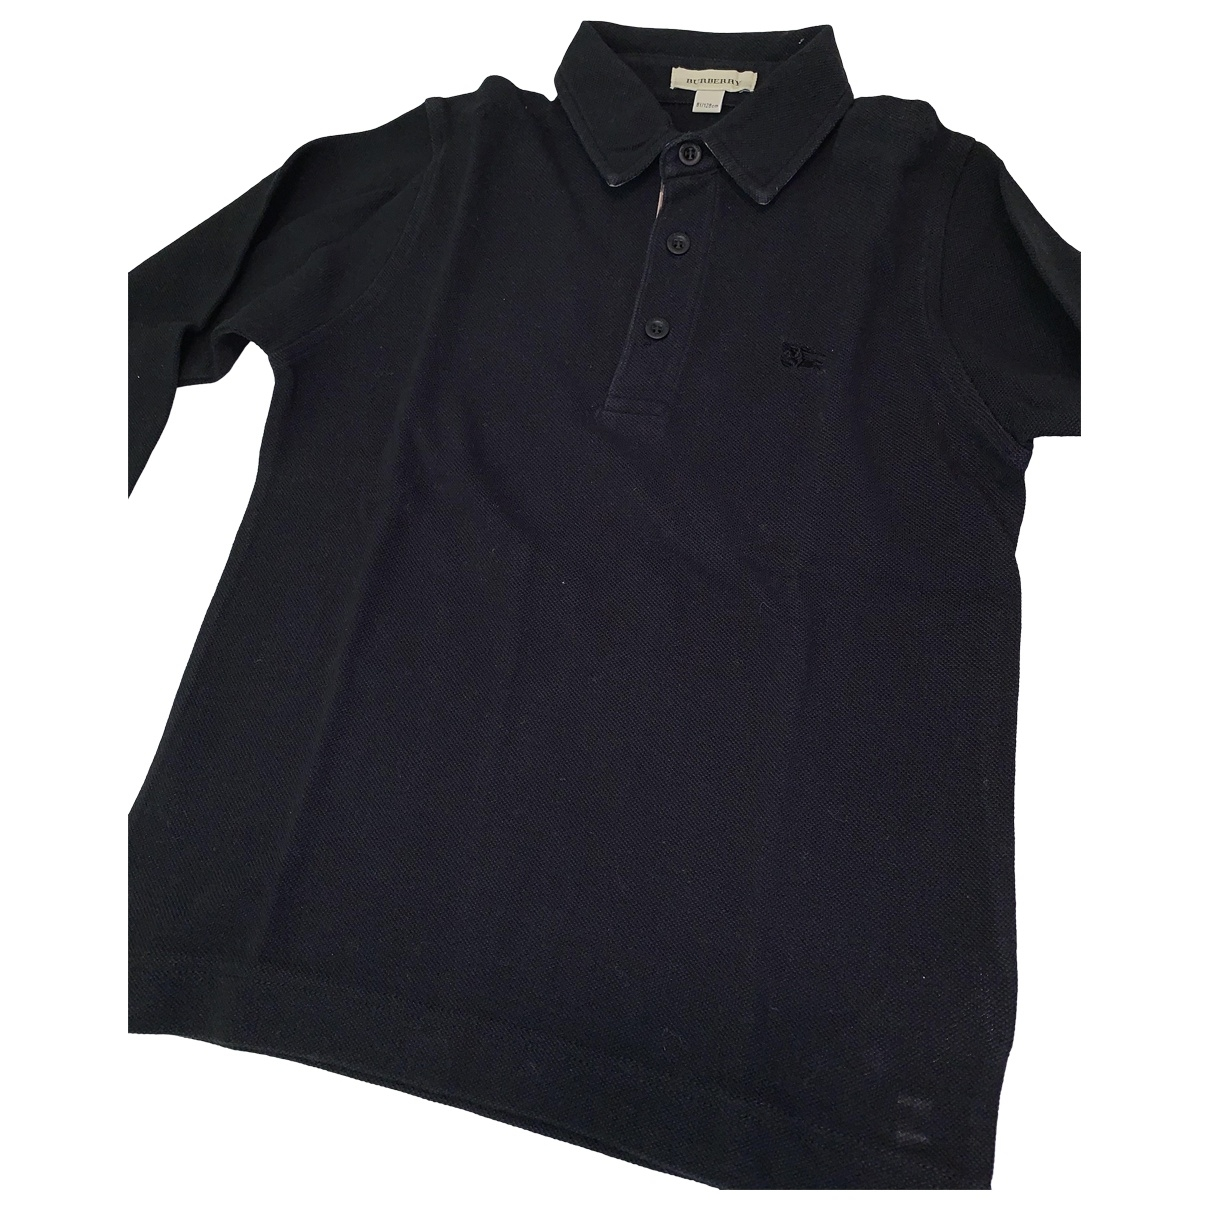 Burberry \N Black Cotton  top for Kids 8 years - until 50 inches UK